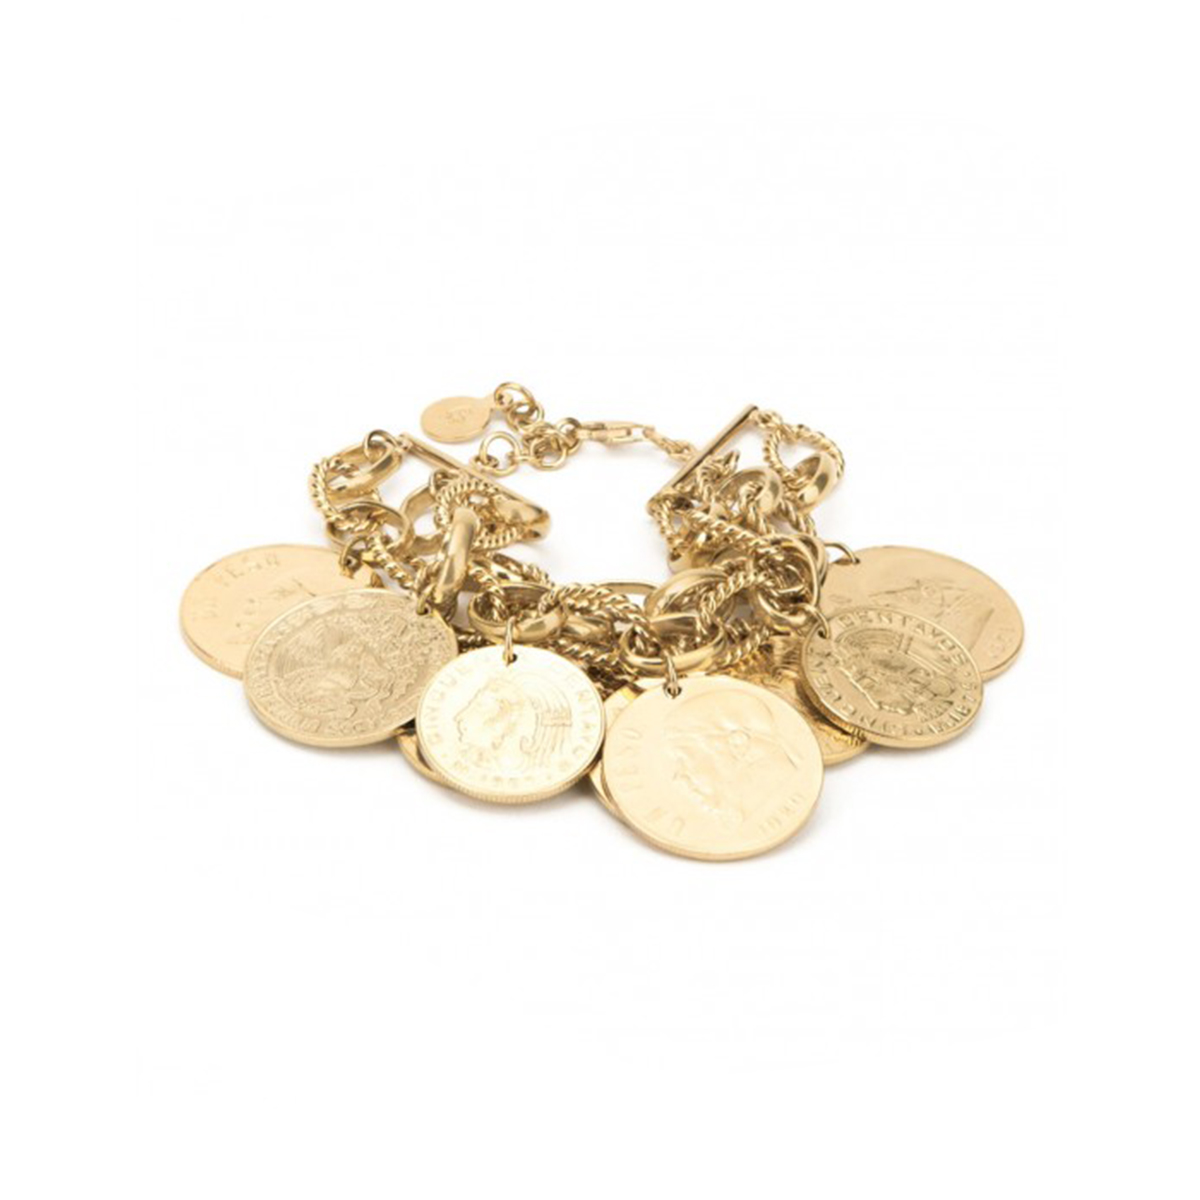 Gold-plated Mexican peso bracelet by Daniel Espinosa